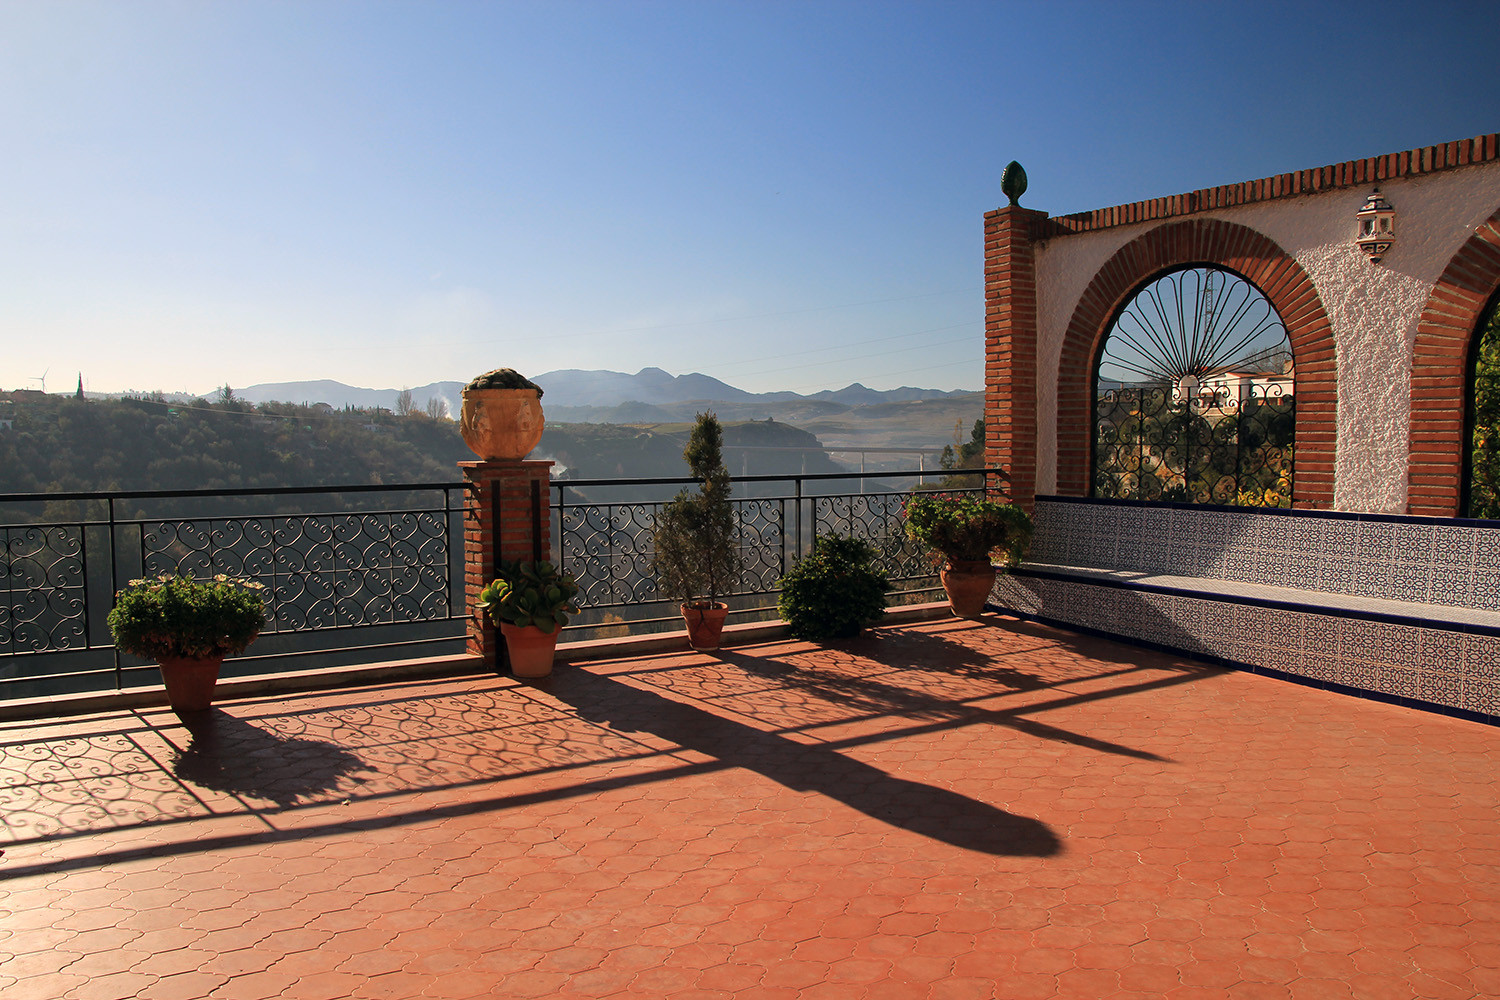 The views from the common terraces